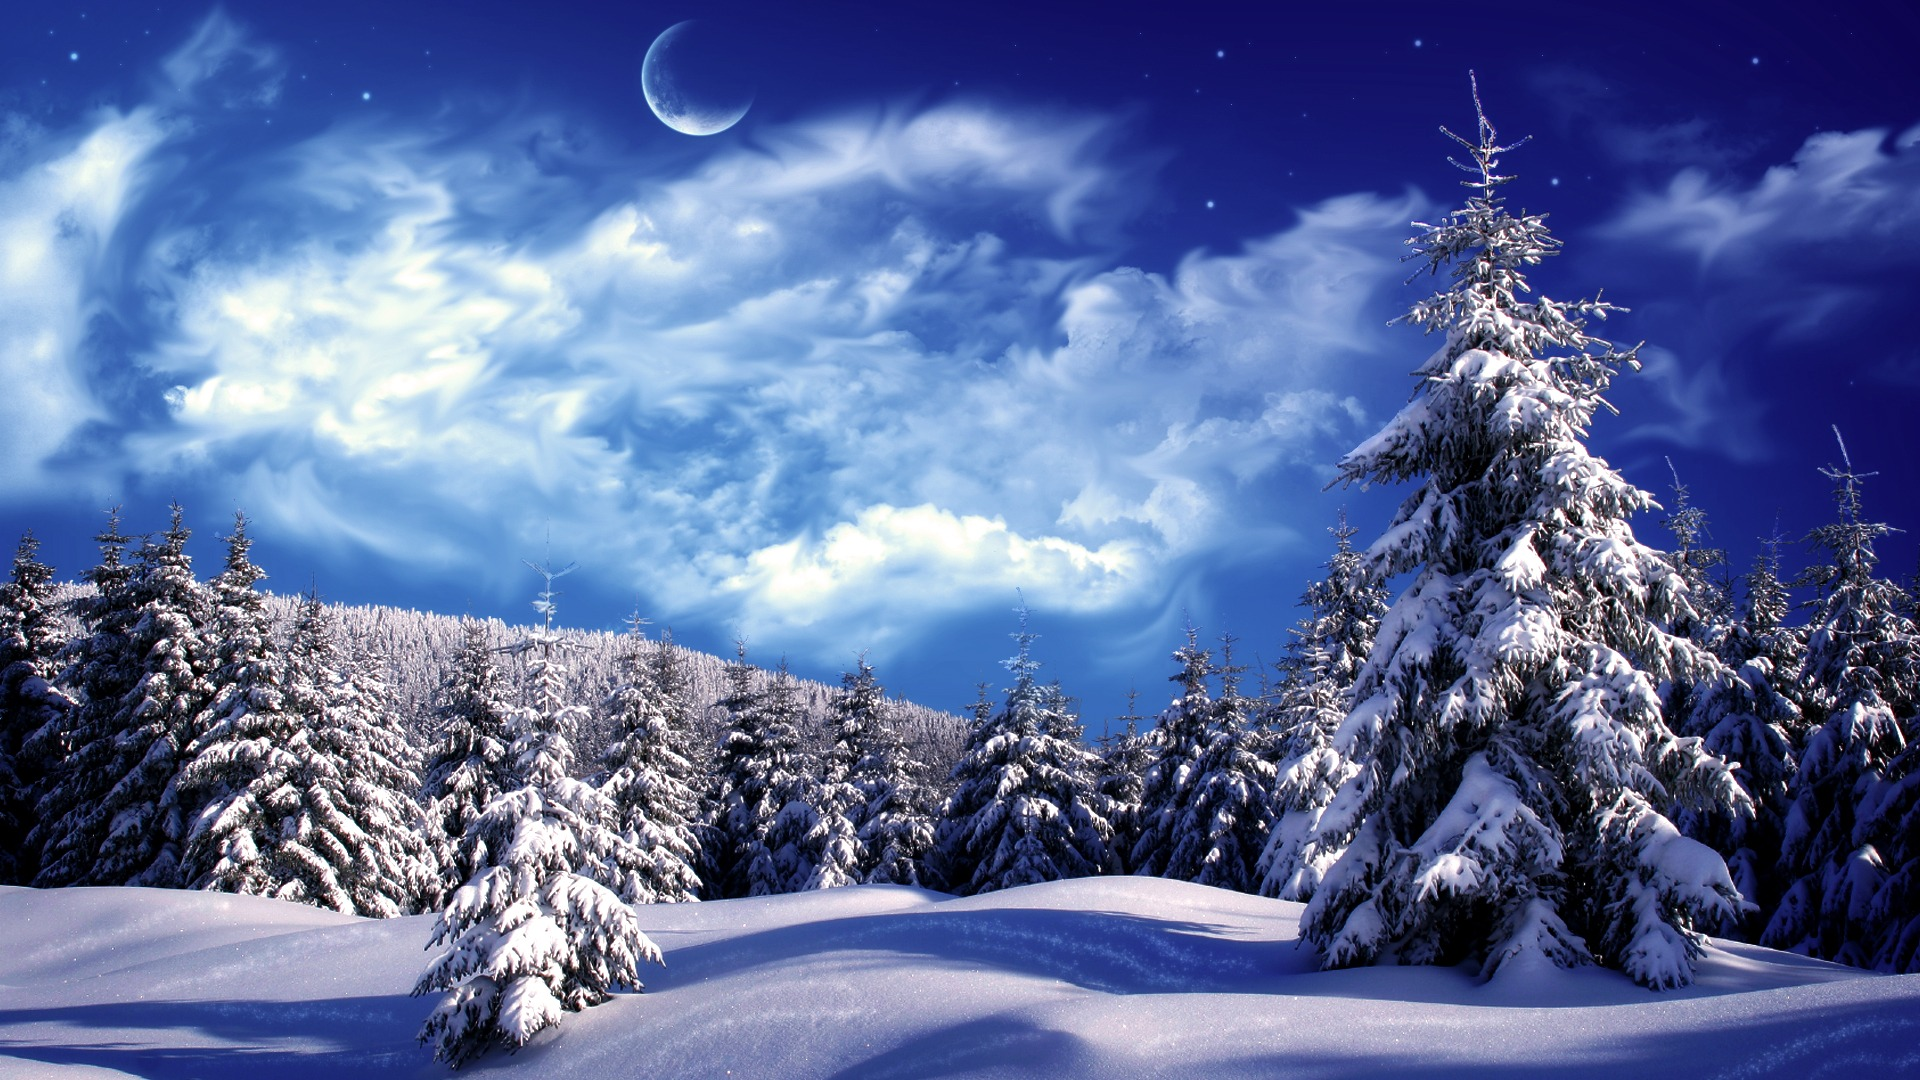 Winter wallpapers and theme for Windows 10 All for Windows 10 1920x1080